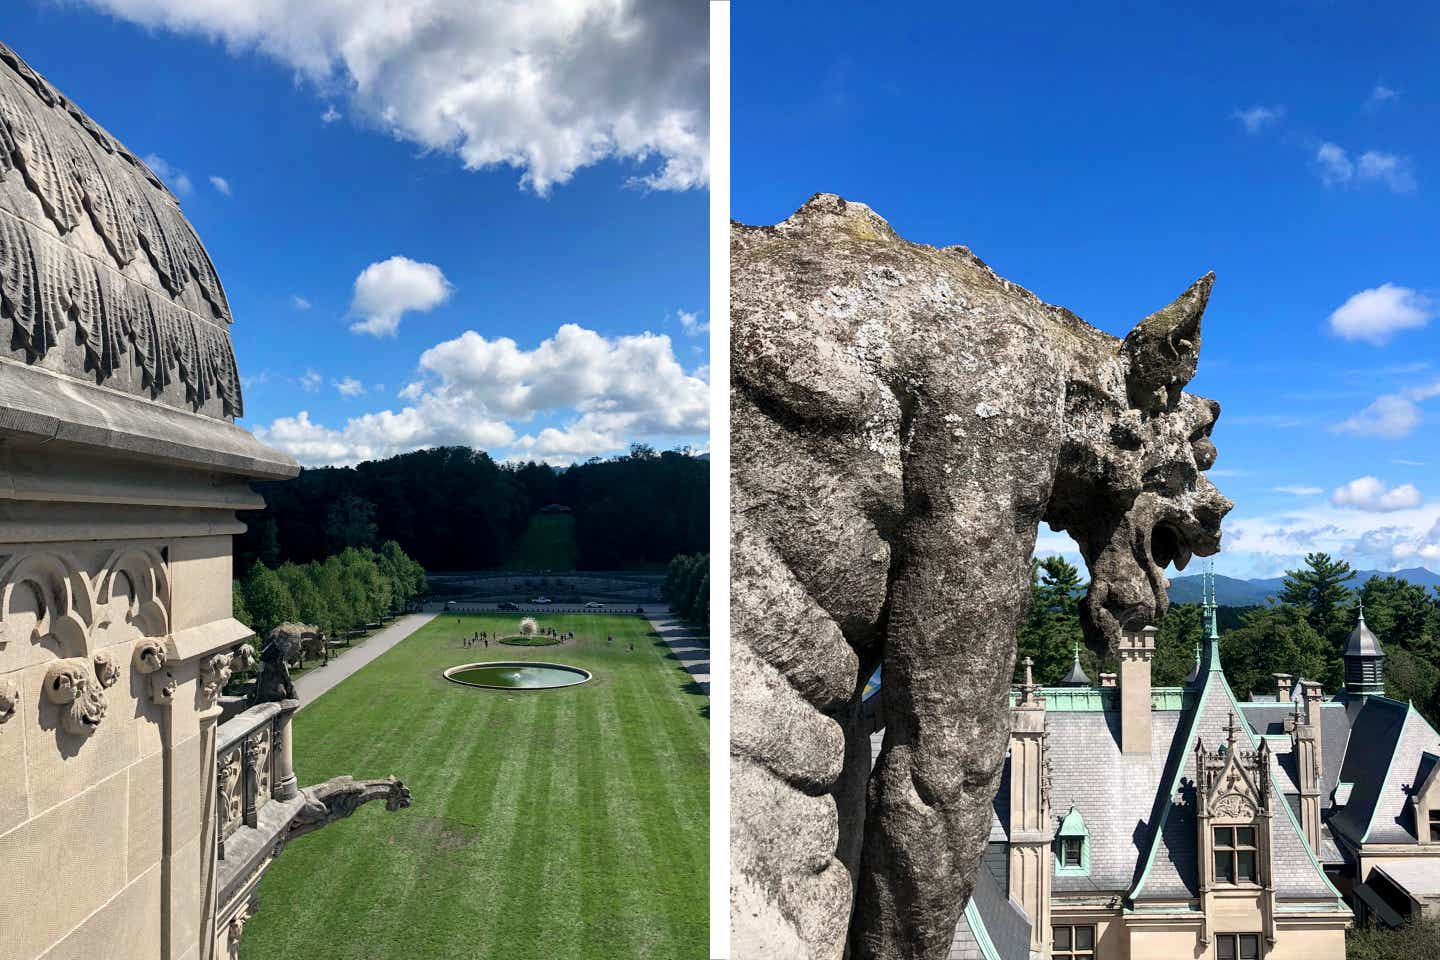 Left: The exterior of the Biltmore Estate from the rooftop as it looks out on the front lawn. Right: The exterior of the Biltmore Estate from the rooftop as it looks at the gargoyle overlooking the rooftops of the estate.